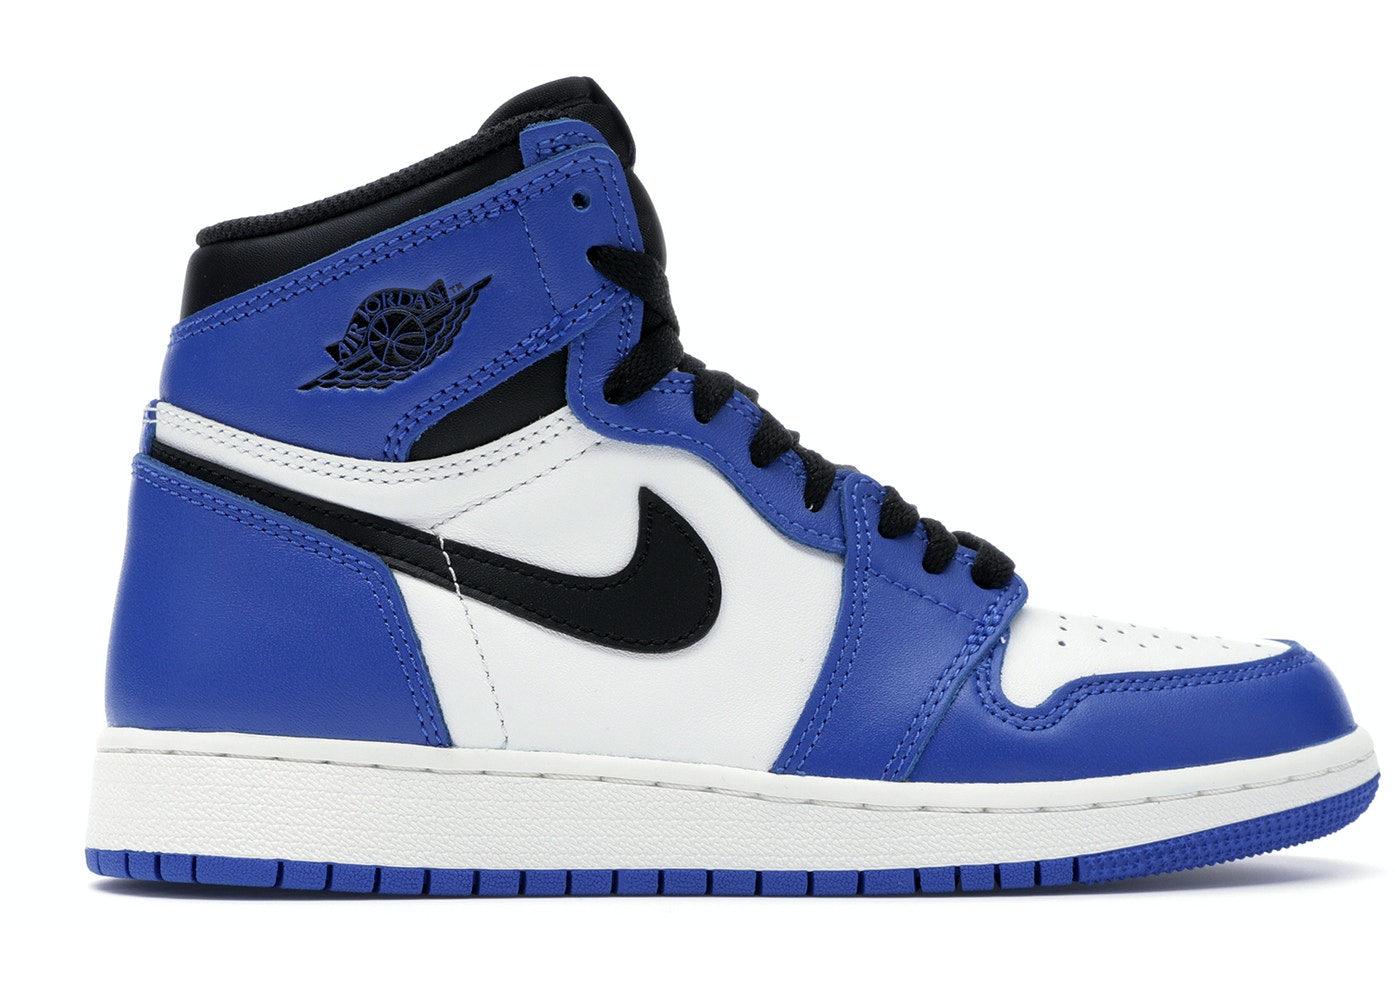 ed06d089097 Jordan 1 Retro High Game Royal (GS)